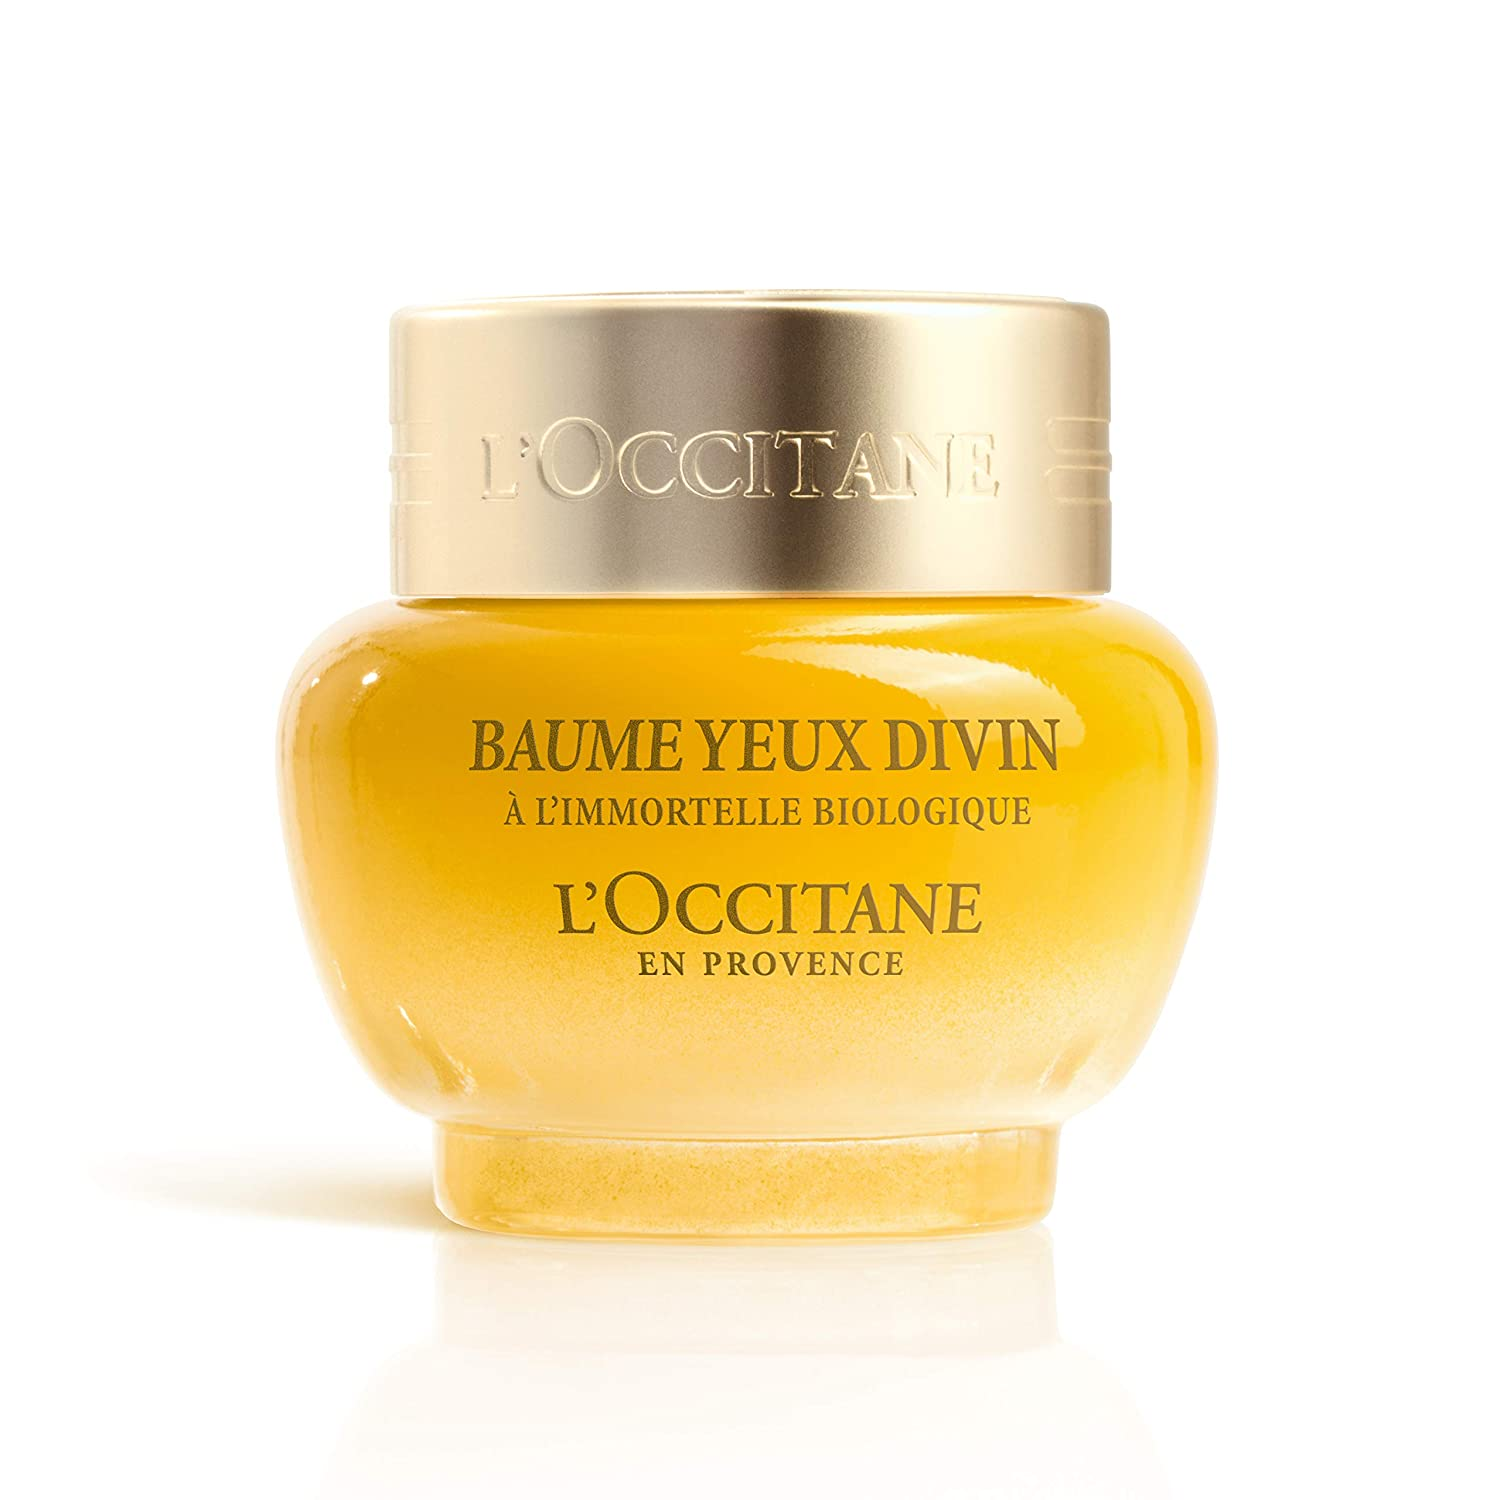 L'Occitane Immortelle Divine Eye Balm to Help Reduce the Appearance of Dark Circles and Puffiness, 0.5 oz.